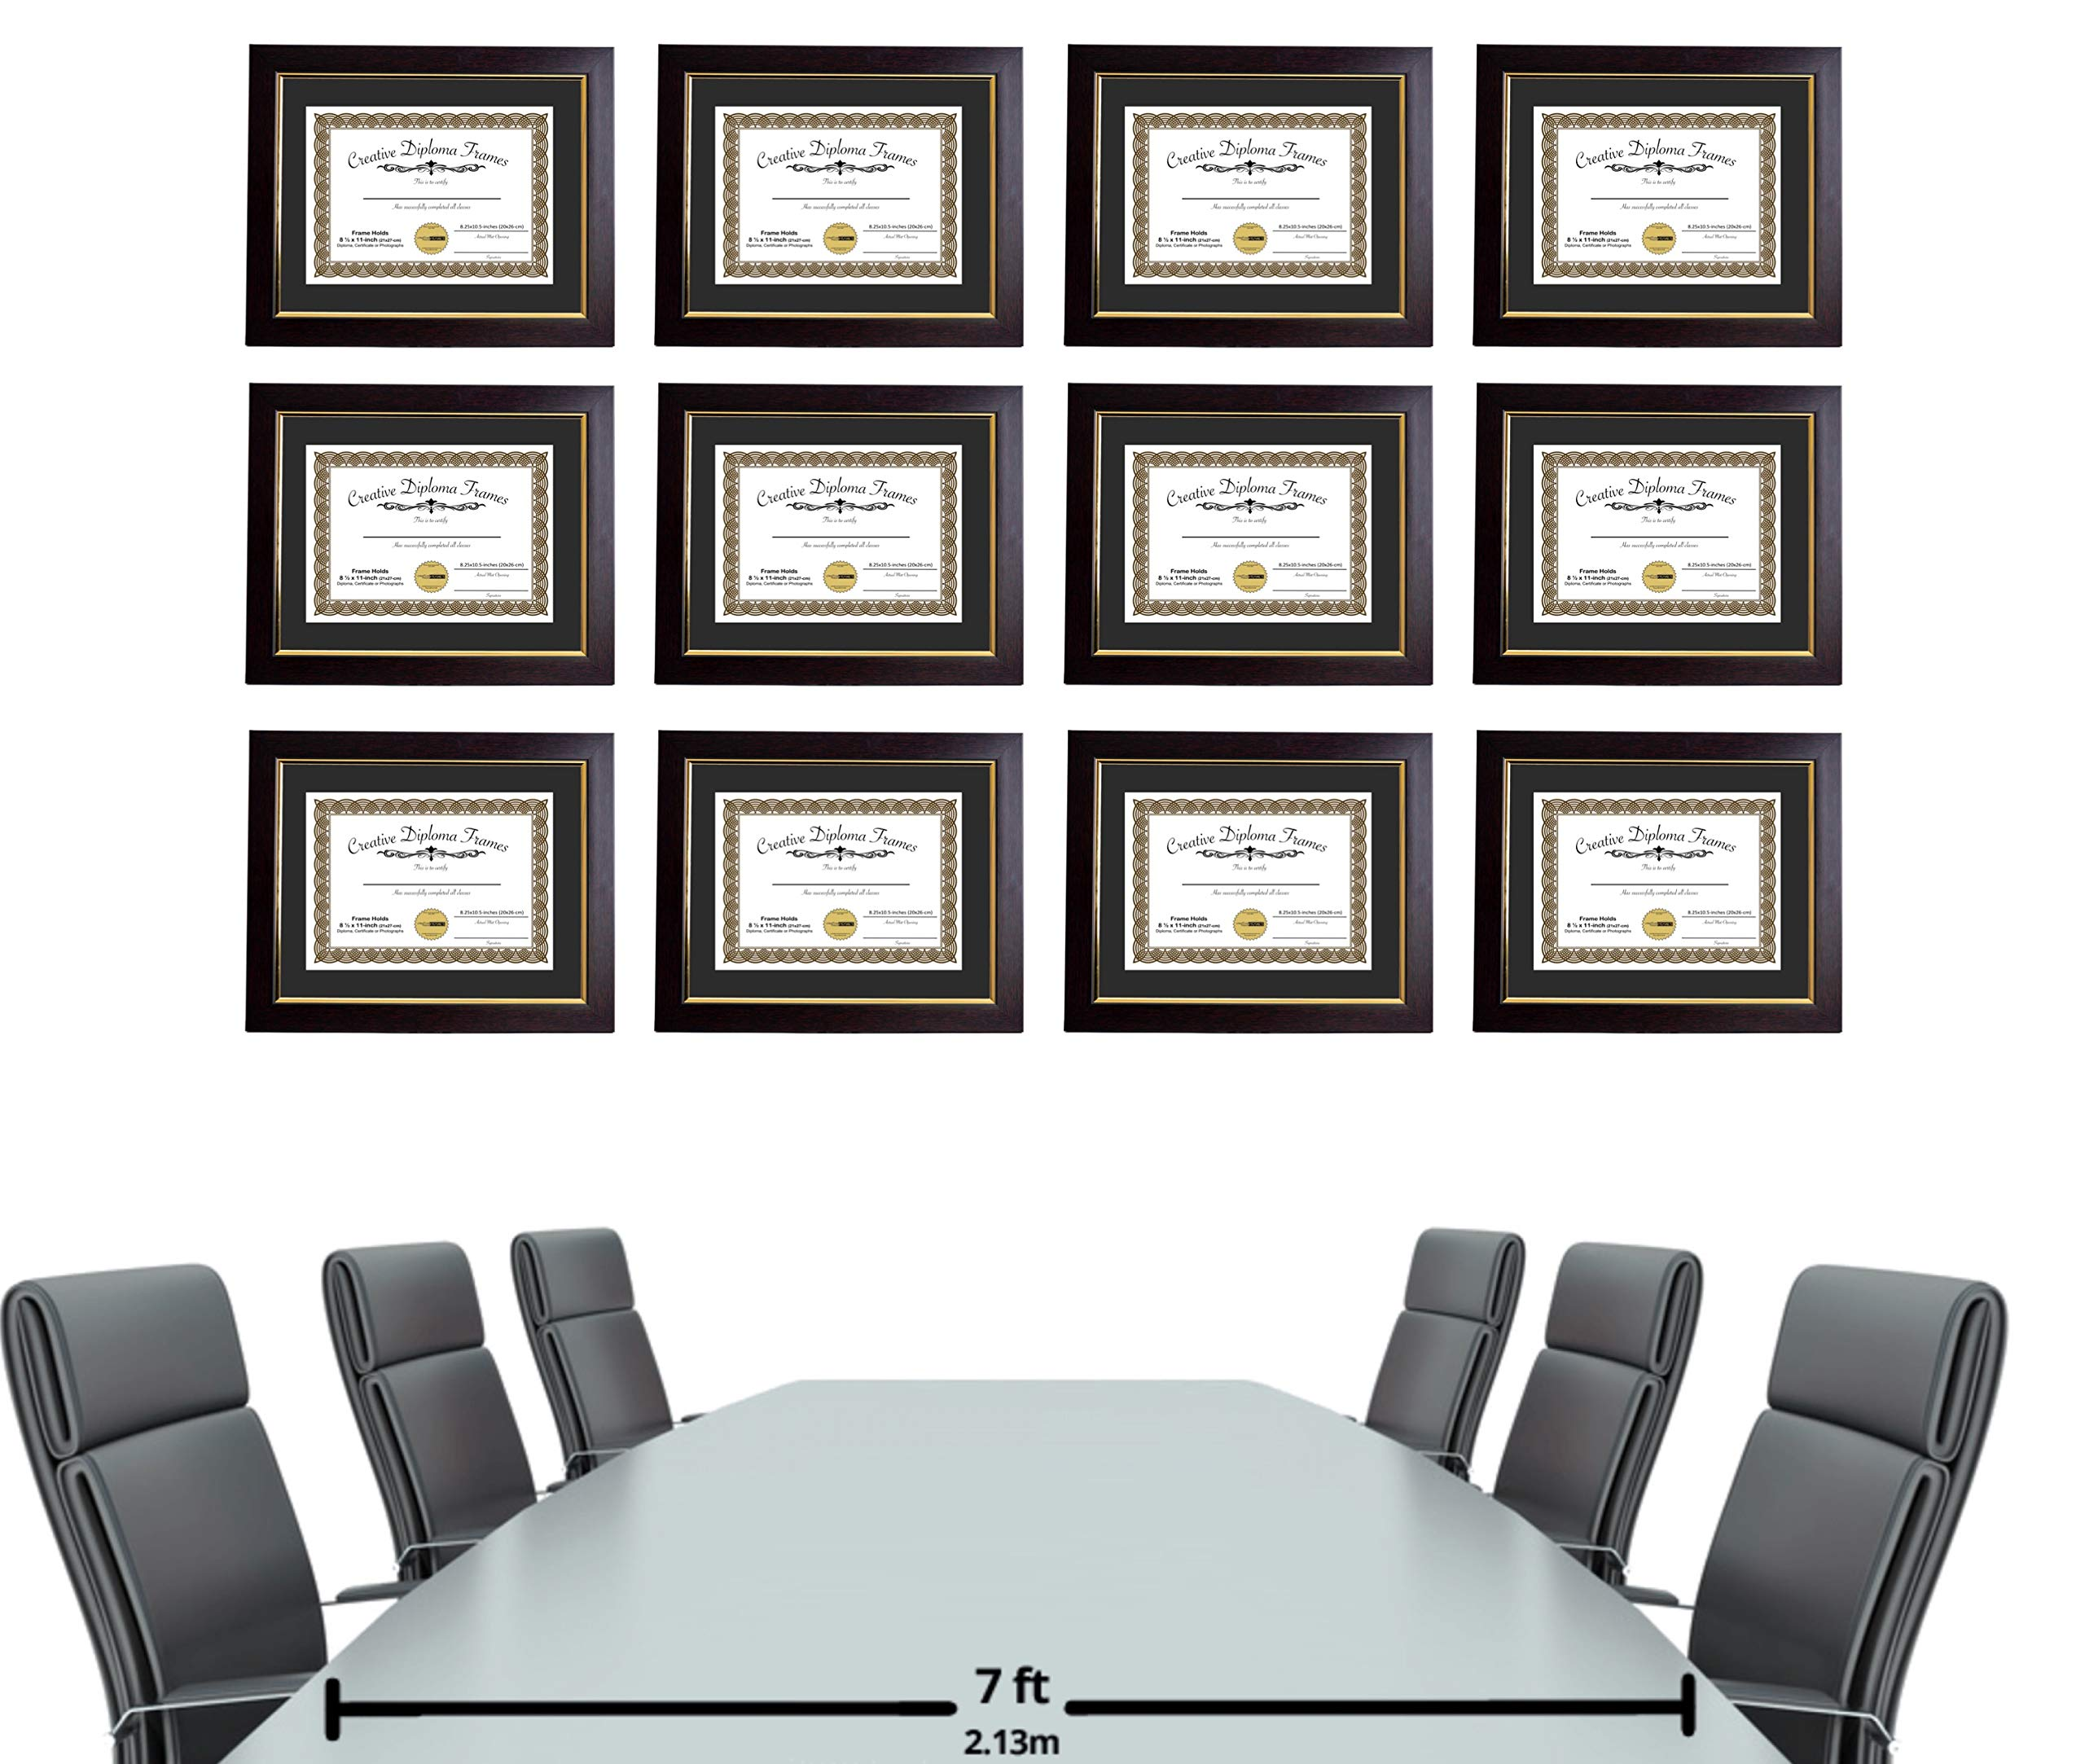 CreativePF [mhg024] 11x14-inch Matted Eco Mahogany Diploma Frame Gold Lip with Black/White Core Mat Holds 8.5x11-inch Media, with Installed Hangers (4-Pack) by Creative Picture Frames (Image #5)